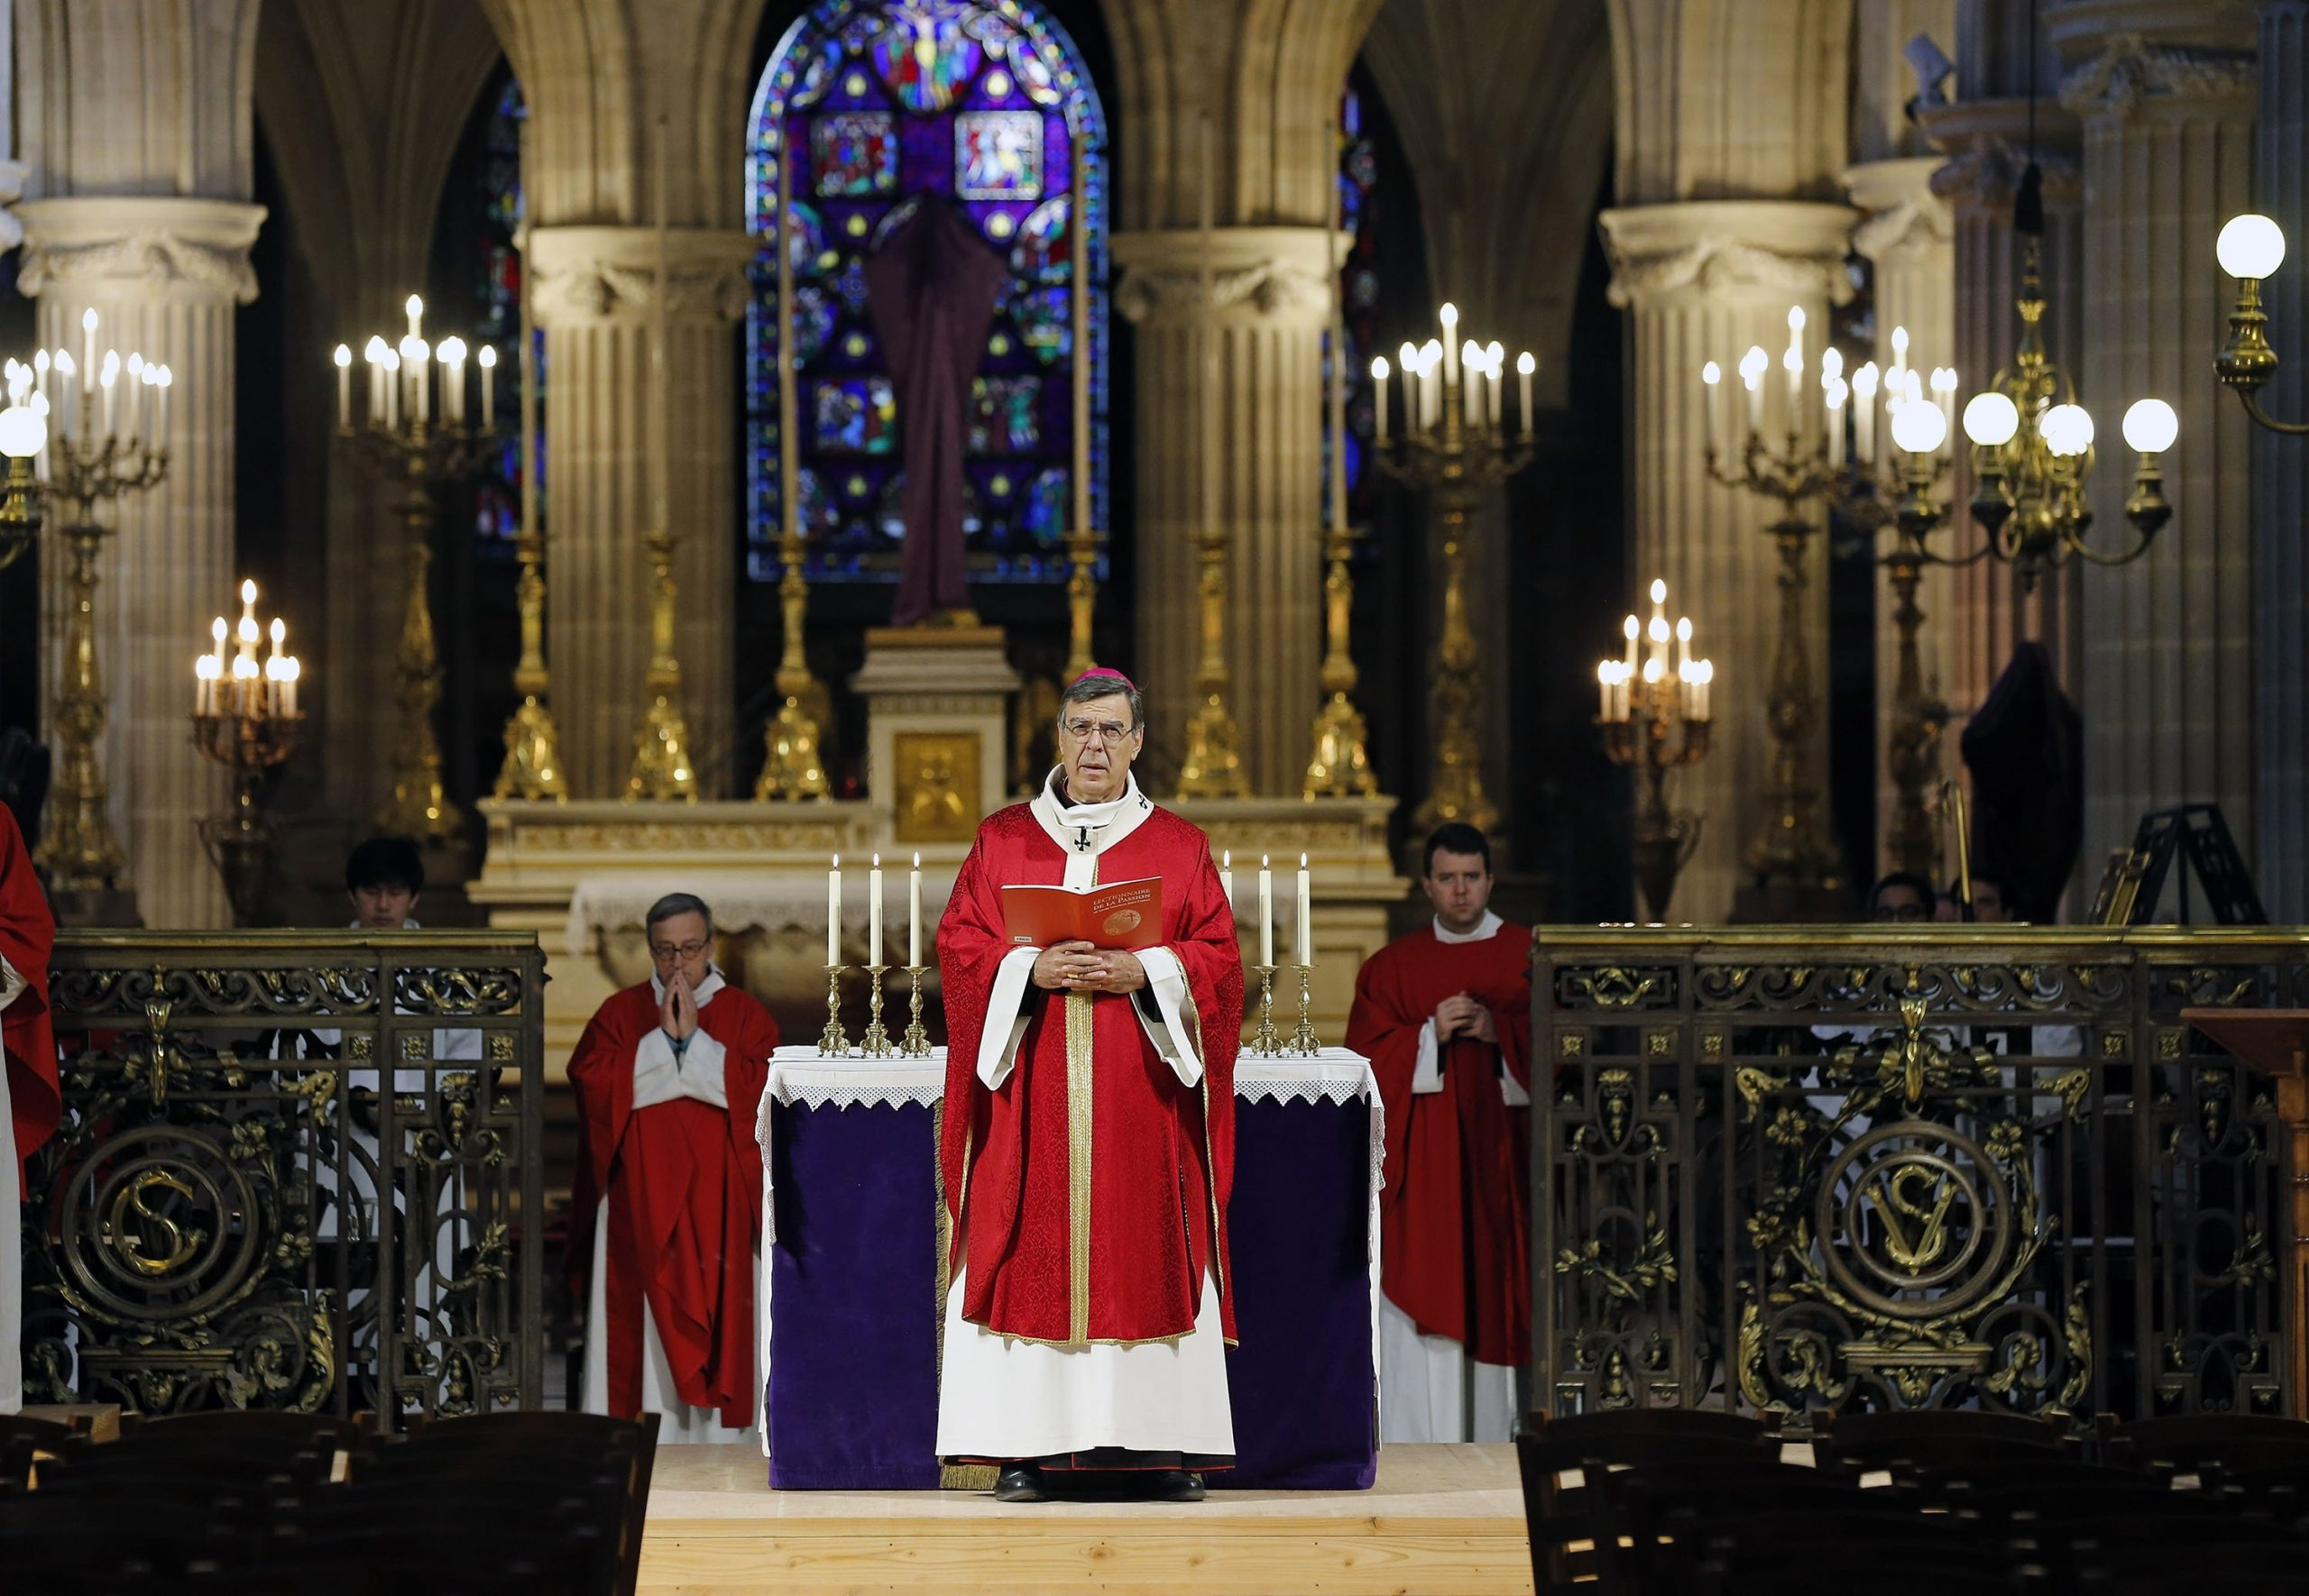 """Archbishop of Paris Michel Aupetit conducts Palm Sunday mass behind closed doors and inside an empty church at """"Saint-Germain-l'Auxerrois"""" during the early days of the COVID-19 pandemic, Paris, France, April 5, 2020."""